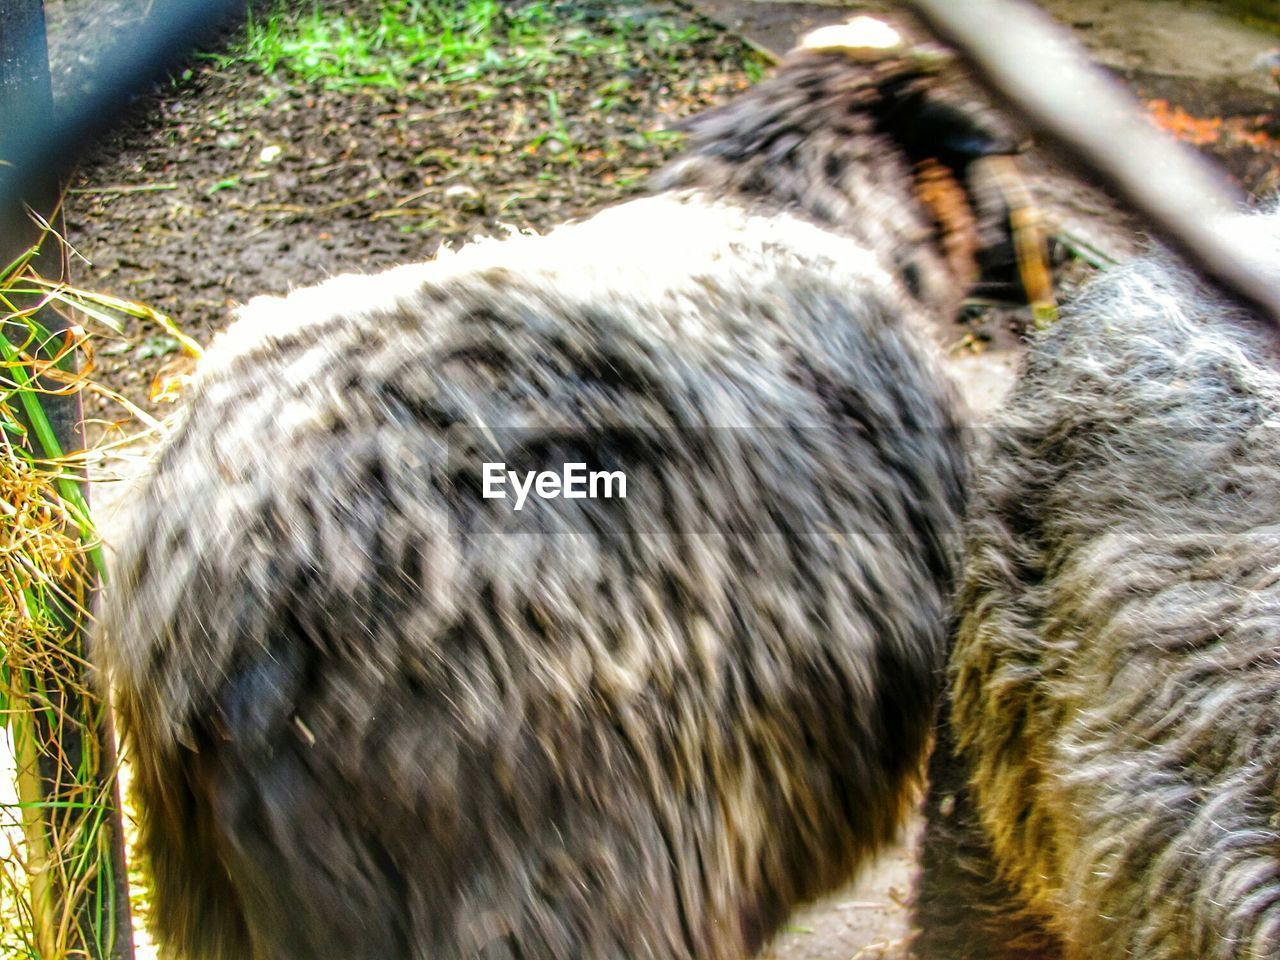 animal themes, animal, one animal, vertebrate, mammal, animal wildlife, blurred motion, day, land, nature, pets, domestic, domestic animals, motion, selective focus, close-up, no people, field, animals in the wild, animal head